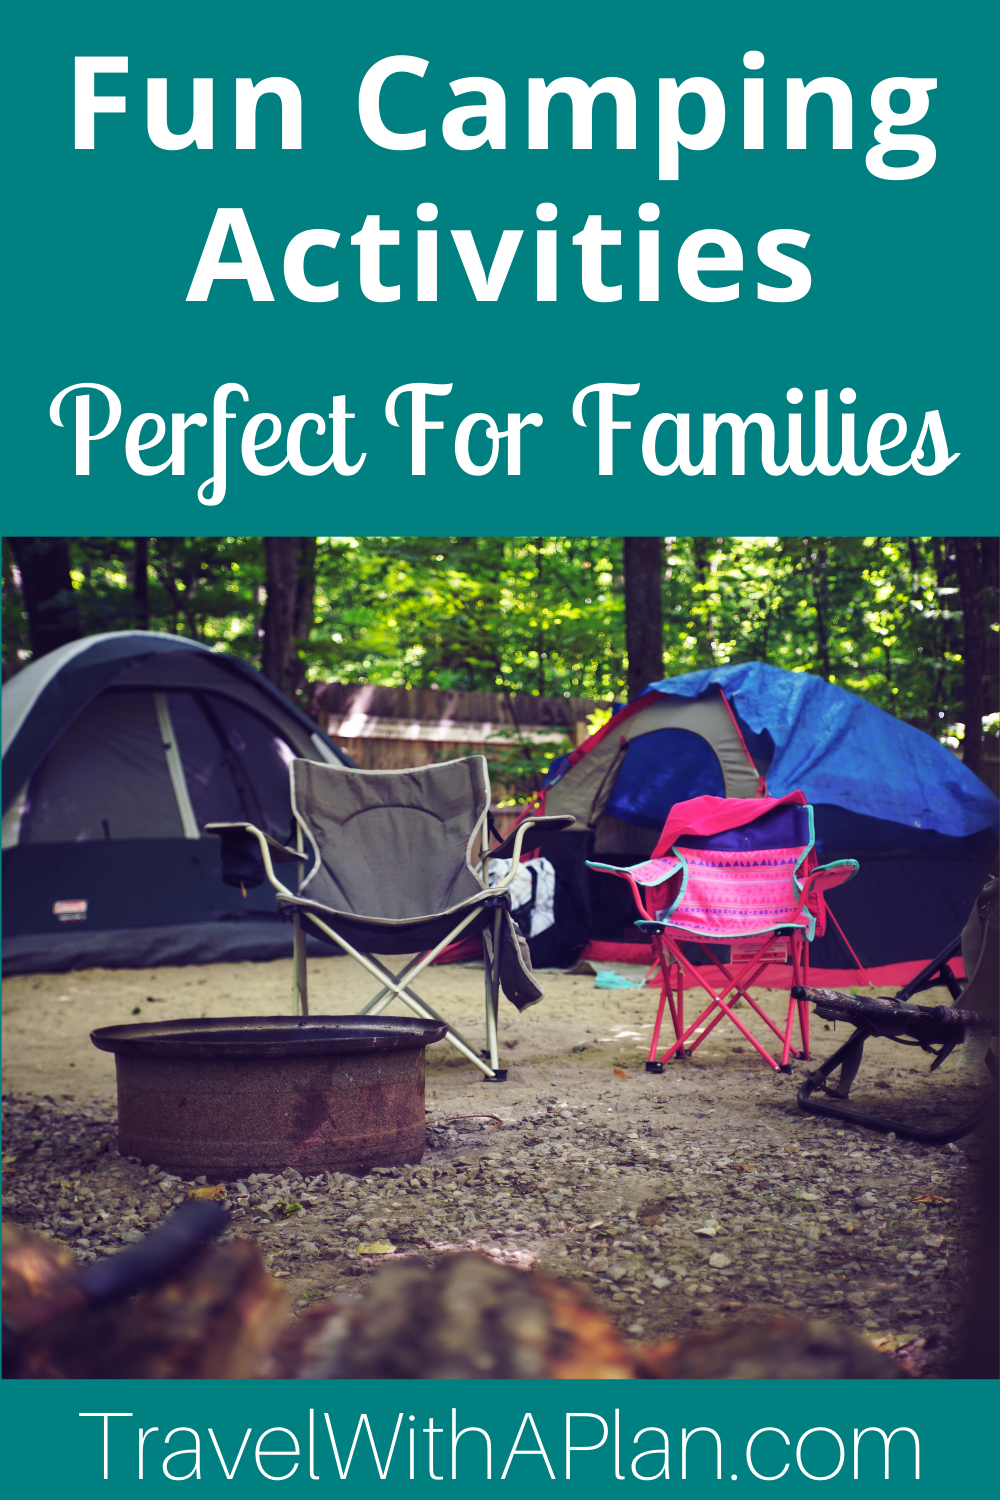 A list of fun summer camping activities from top U.S. family travel blog, Travel With A Plan!